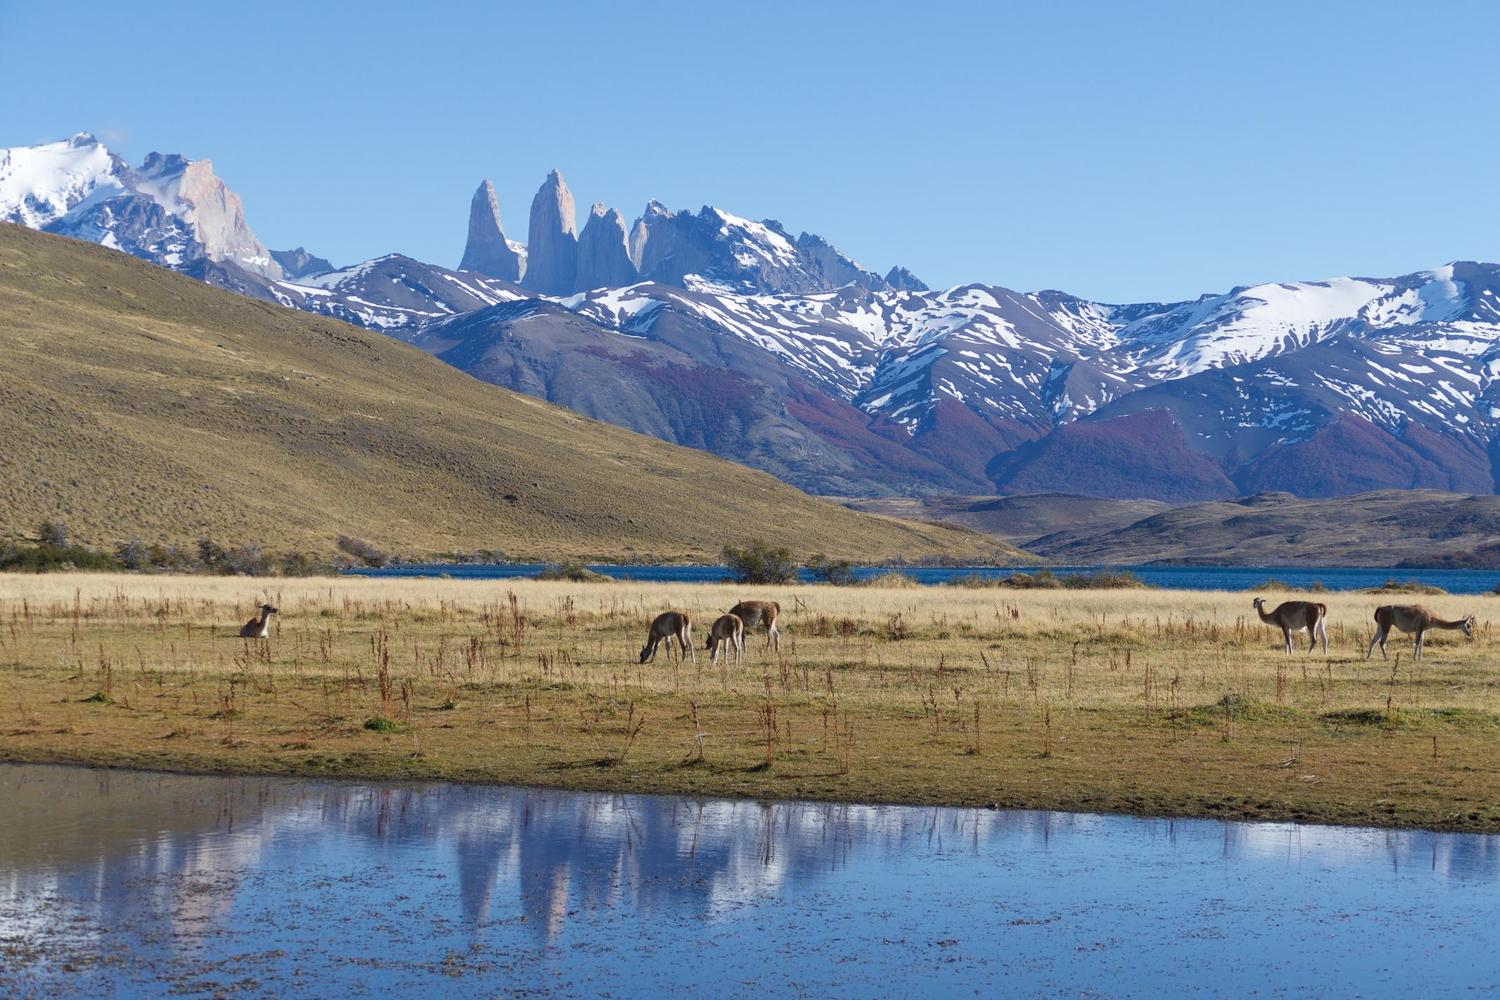 Guanacos grazing at Laguna Azul